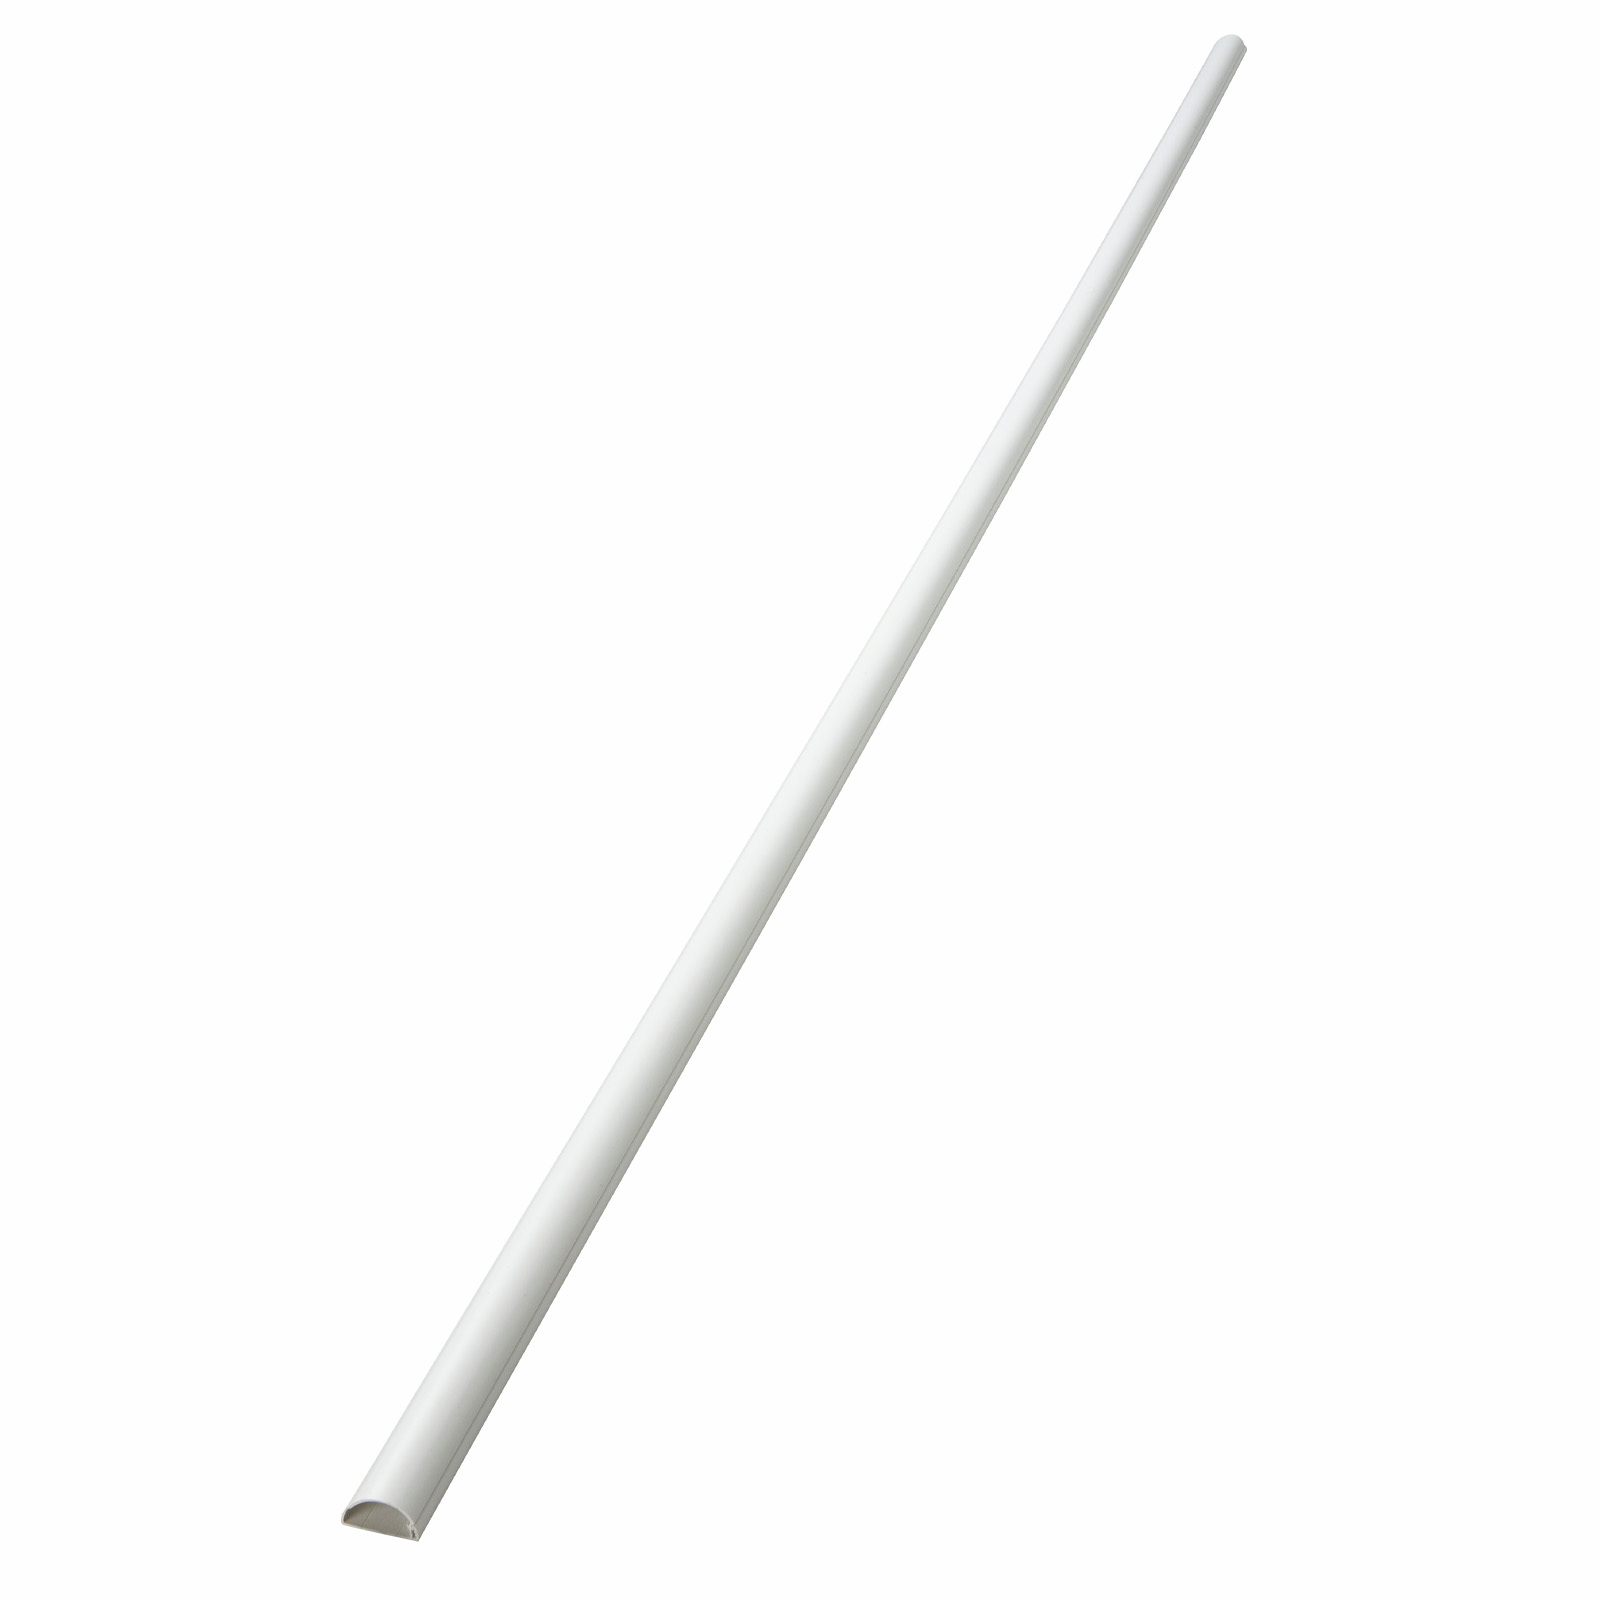 D-Line 16 x 08mm 2m White Adhesive Cable Management Cover